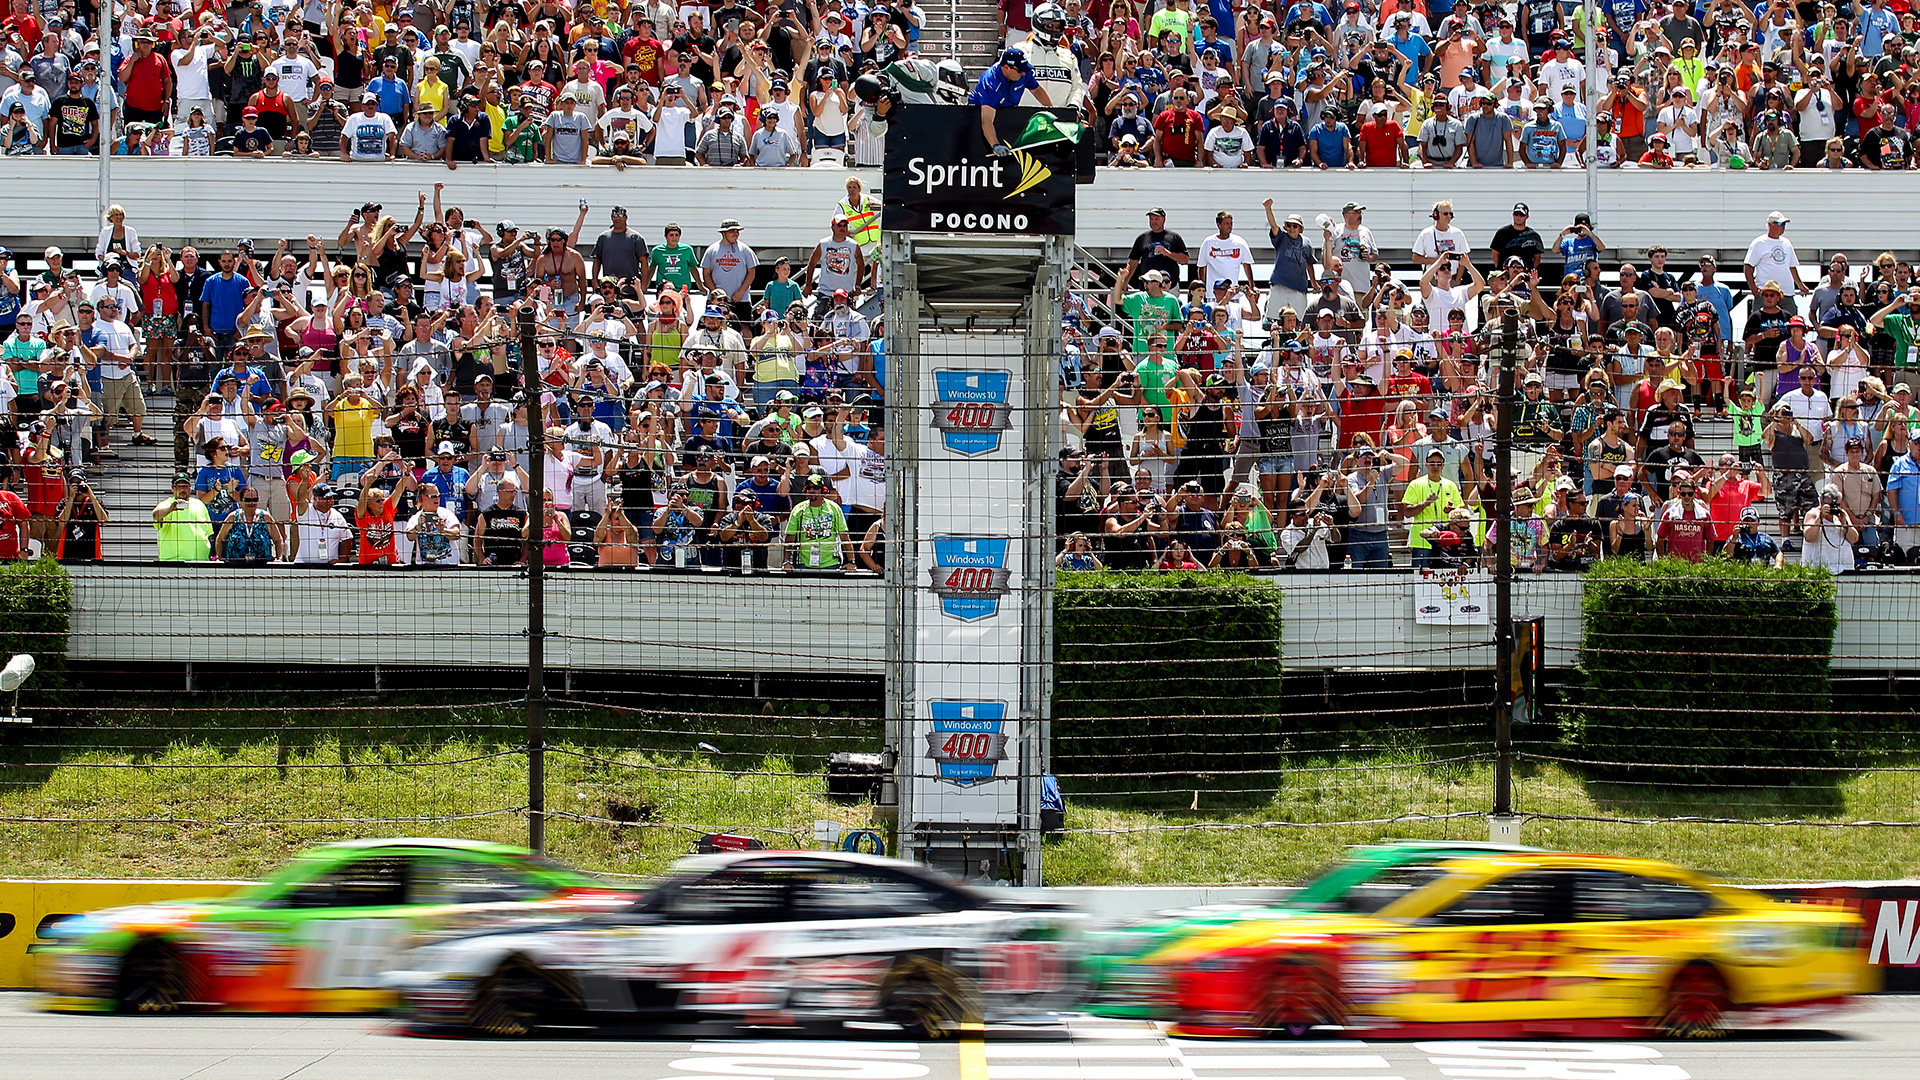 Must-see images from Windows 10 400 at Pocono